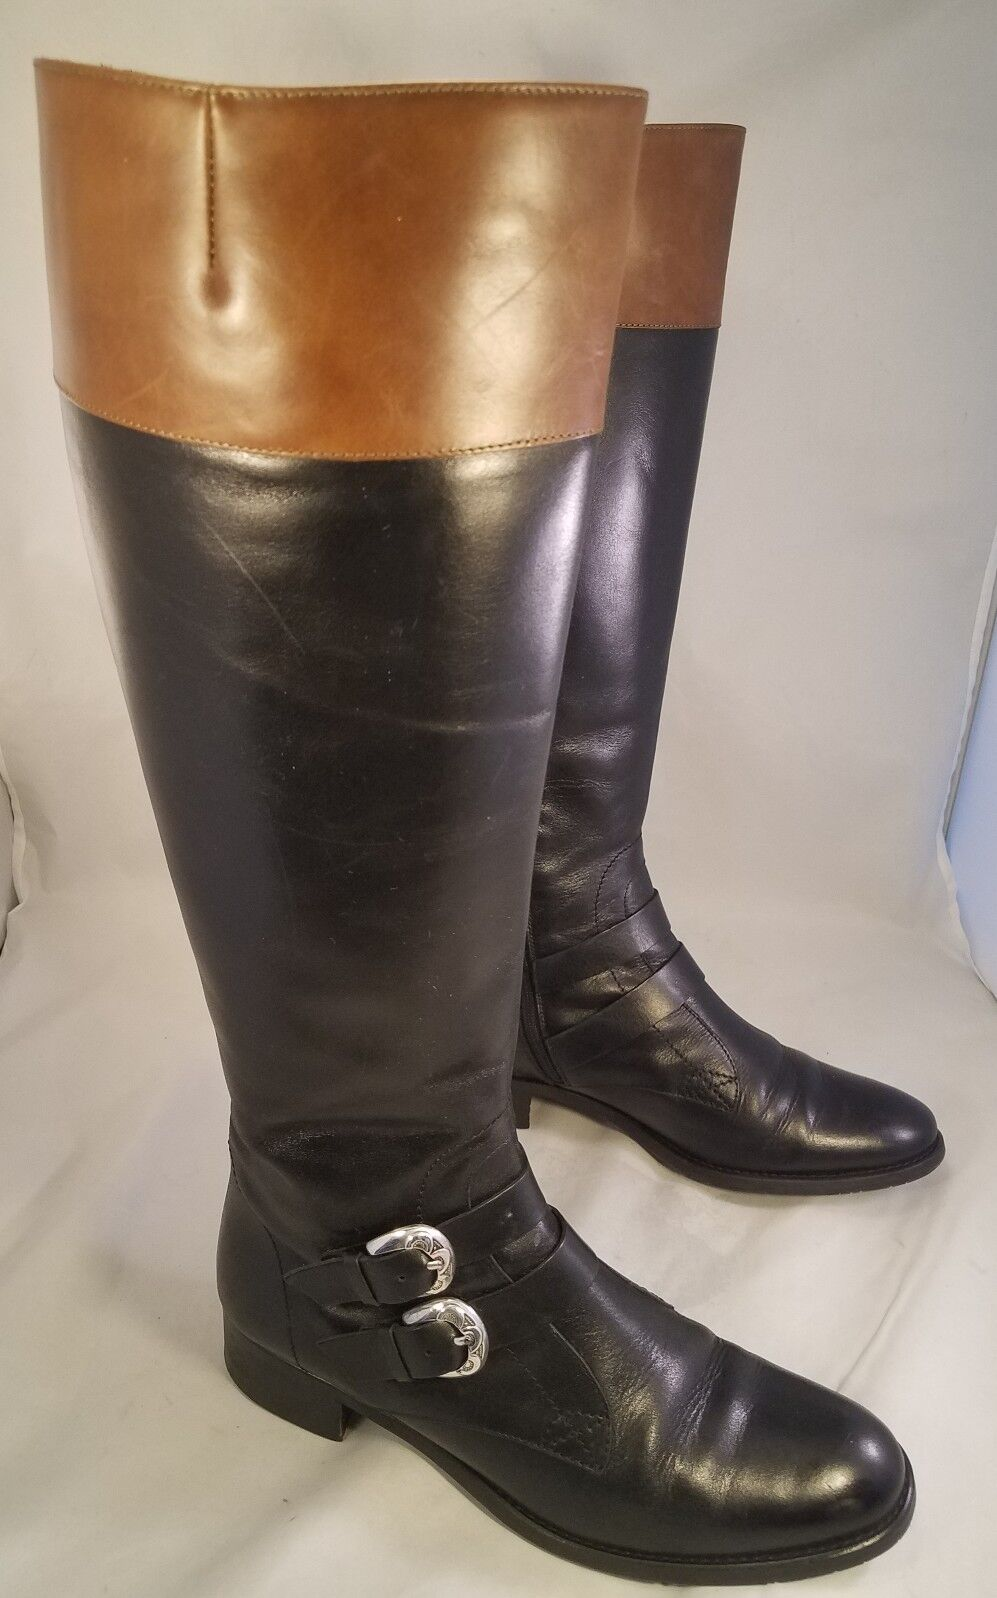 HUNTER ITALY BLACK Damenschuhe Stiefel ALL LEATHER EQUESTRIAN RIDING BUCKLES BLACK ITALY BROWN 7.5 M 3179f1